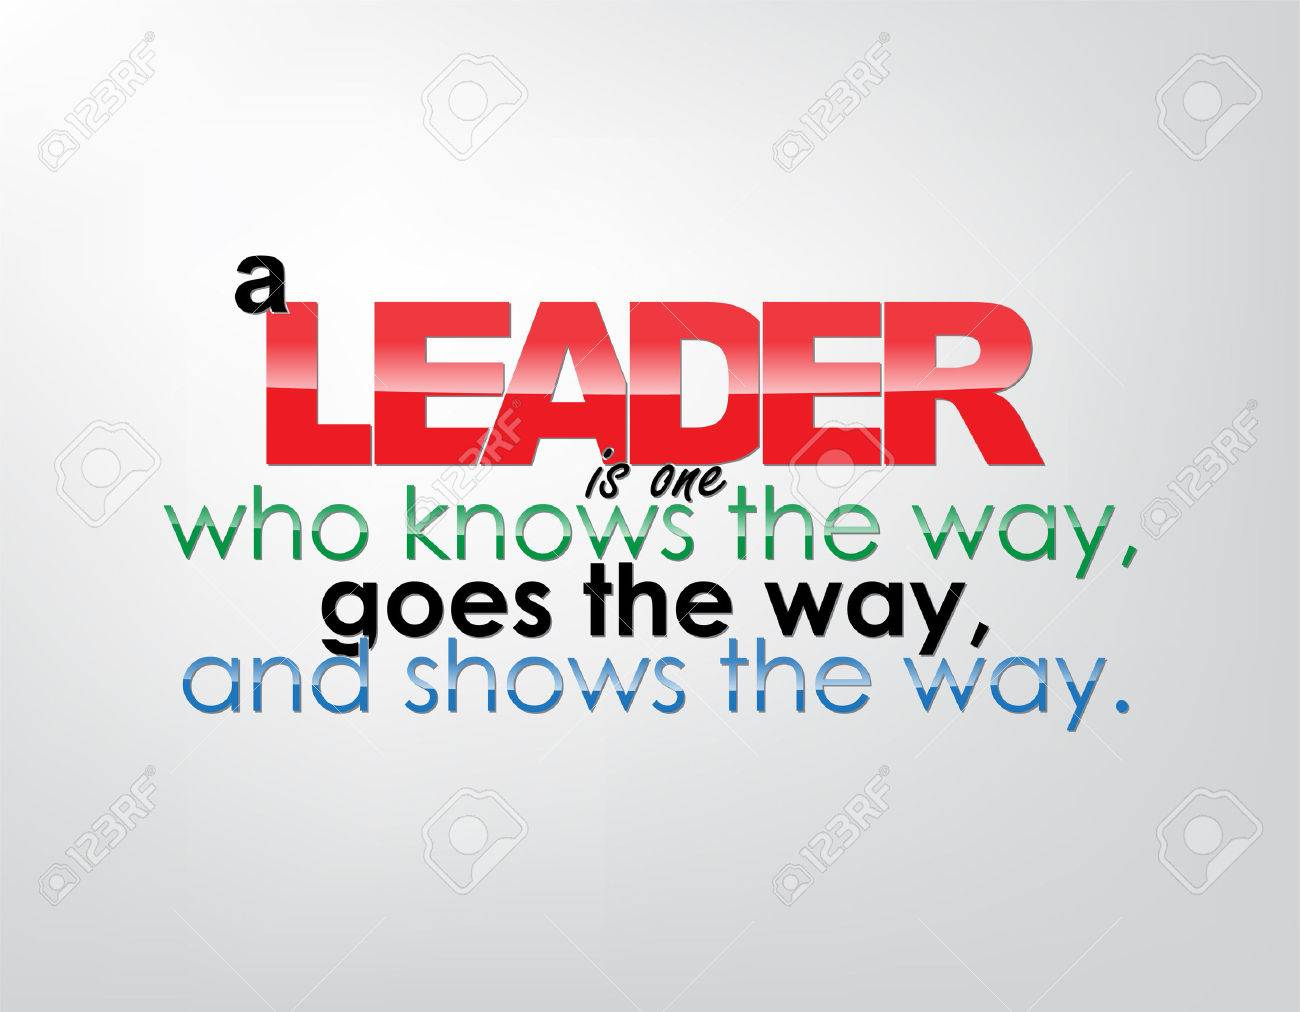 A leader is one who knows the way, goes the way, and shows the way. Motivational background. Typography poster. - 23660216